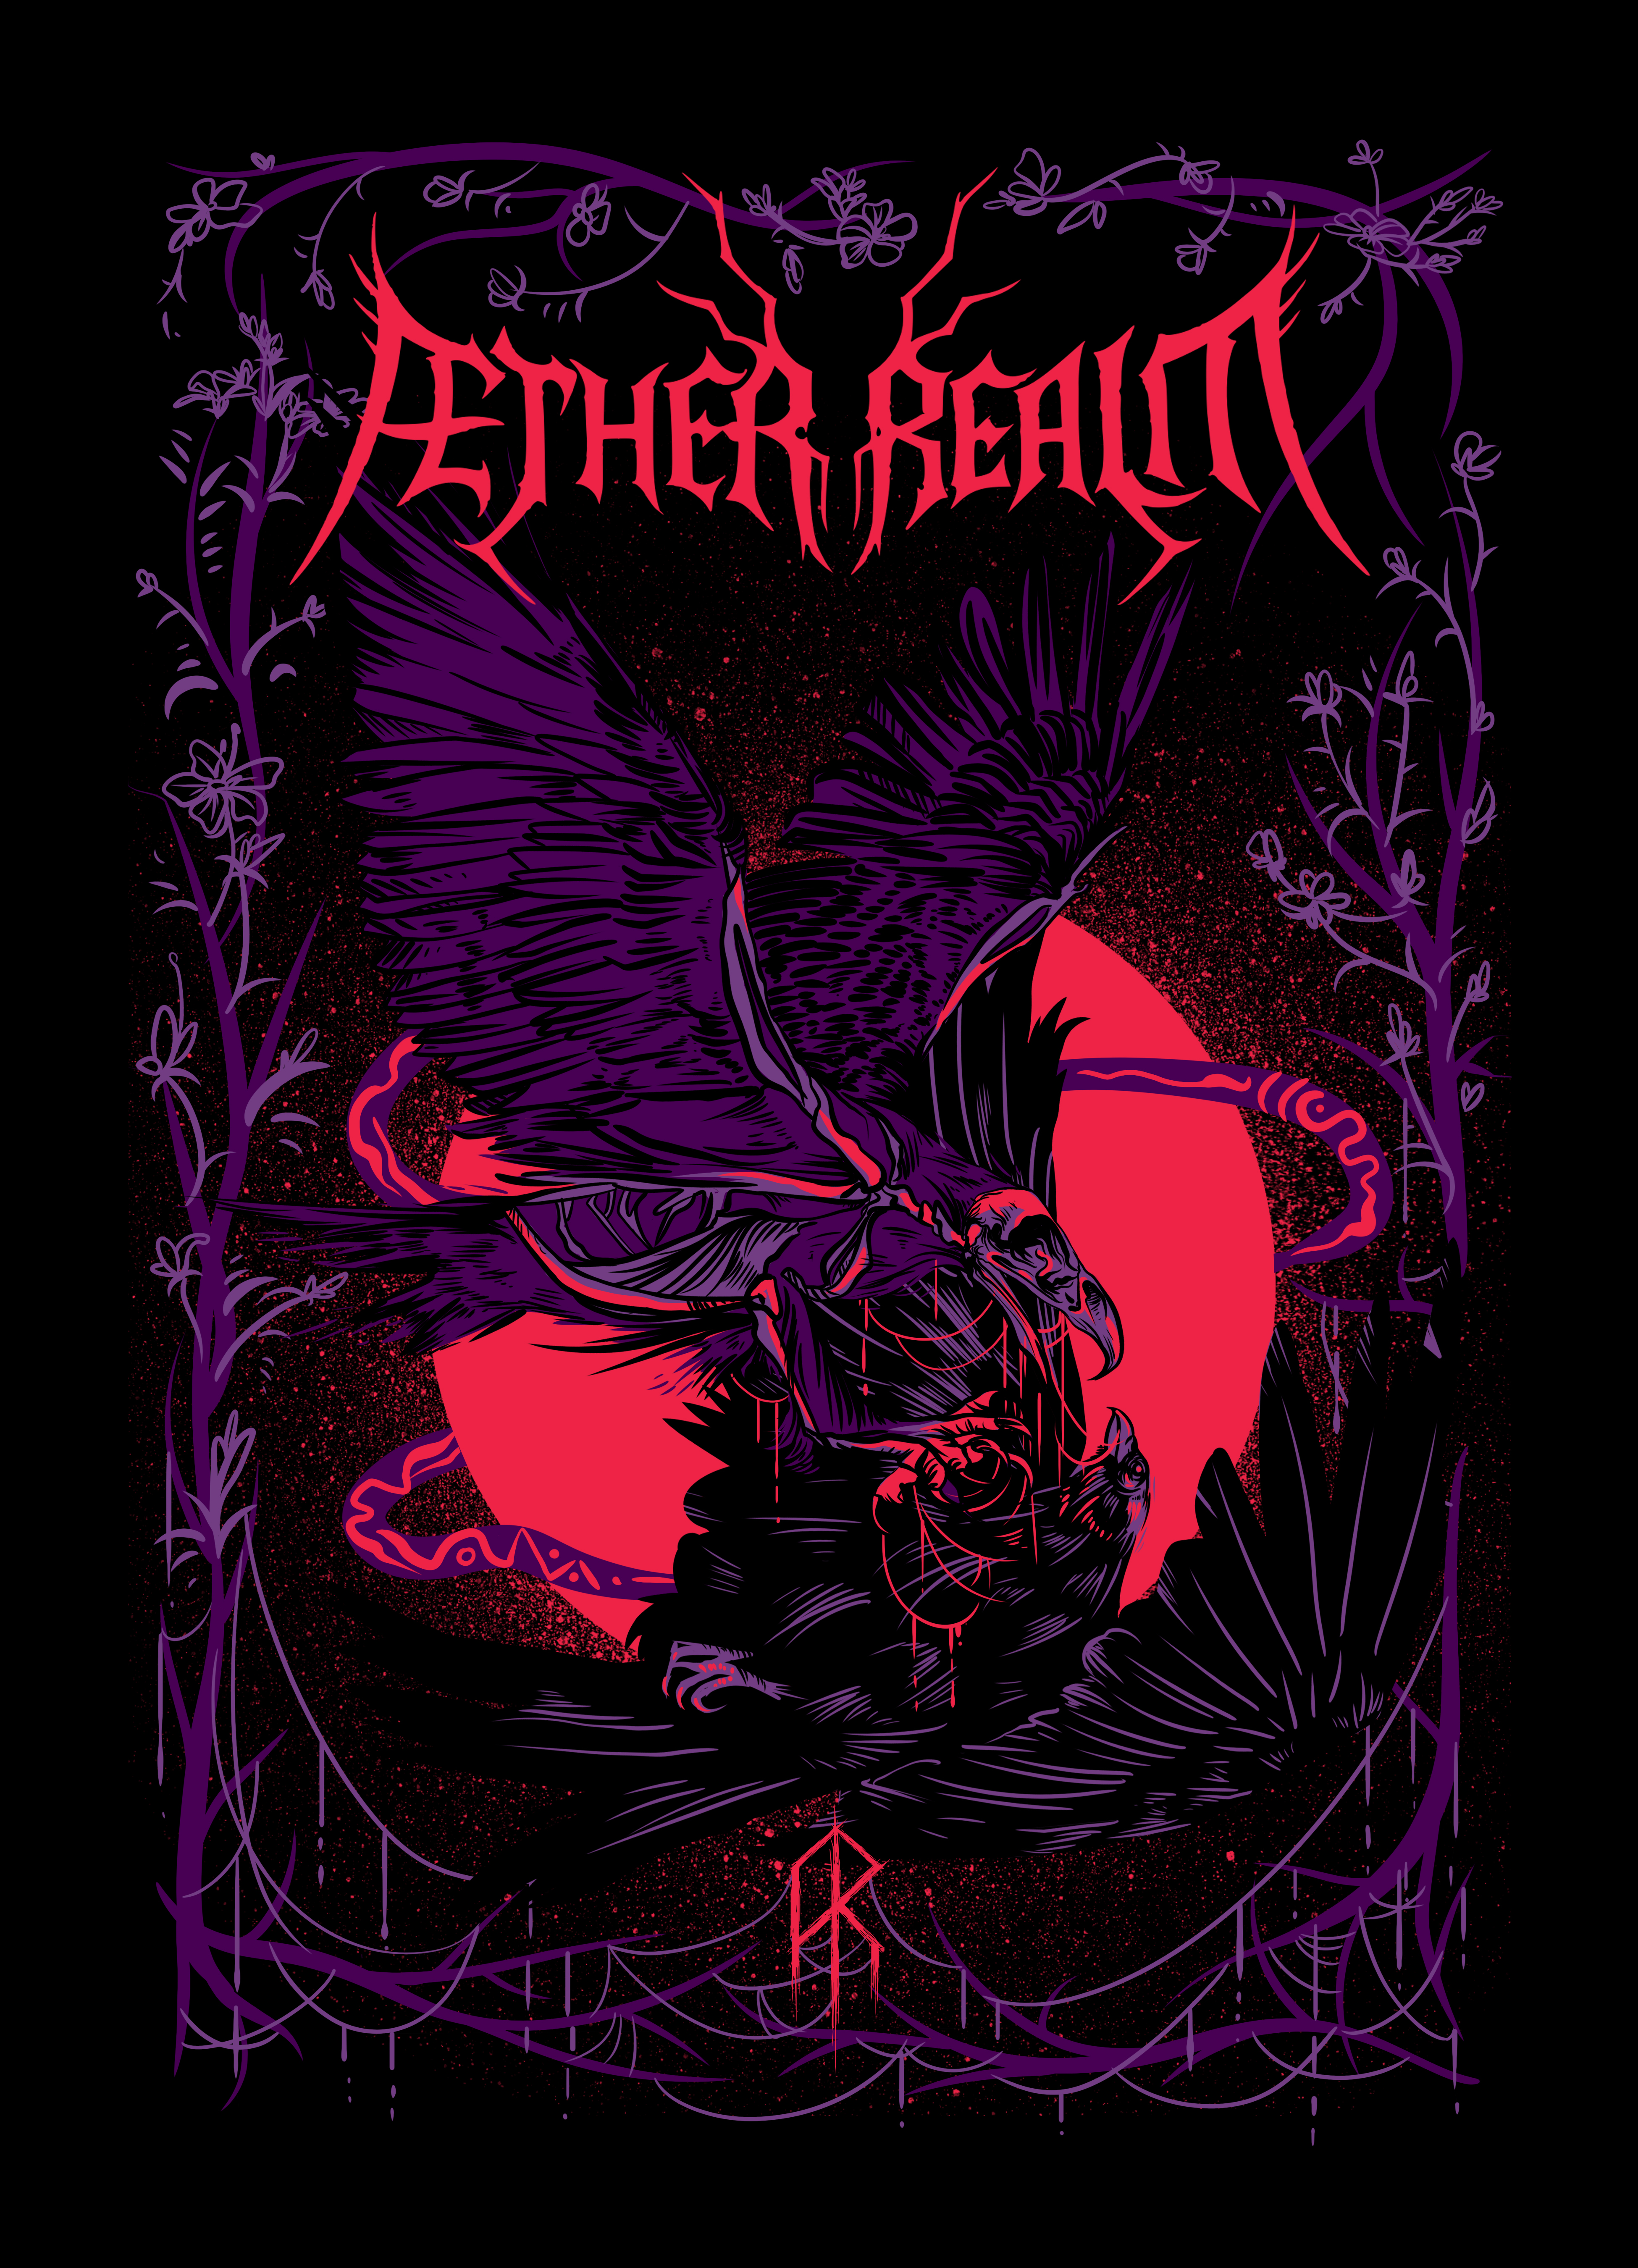 Birds - Aether Realm